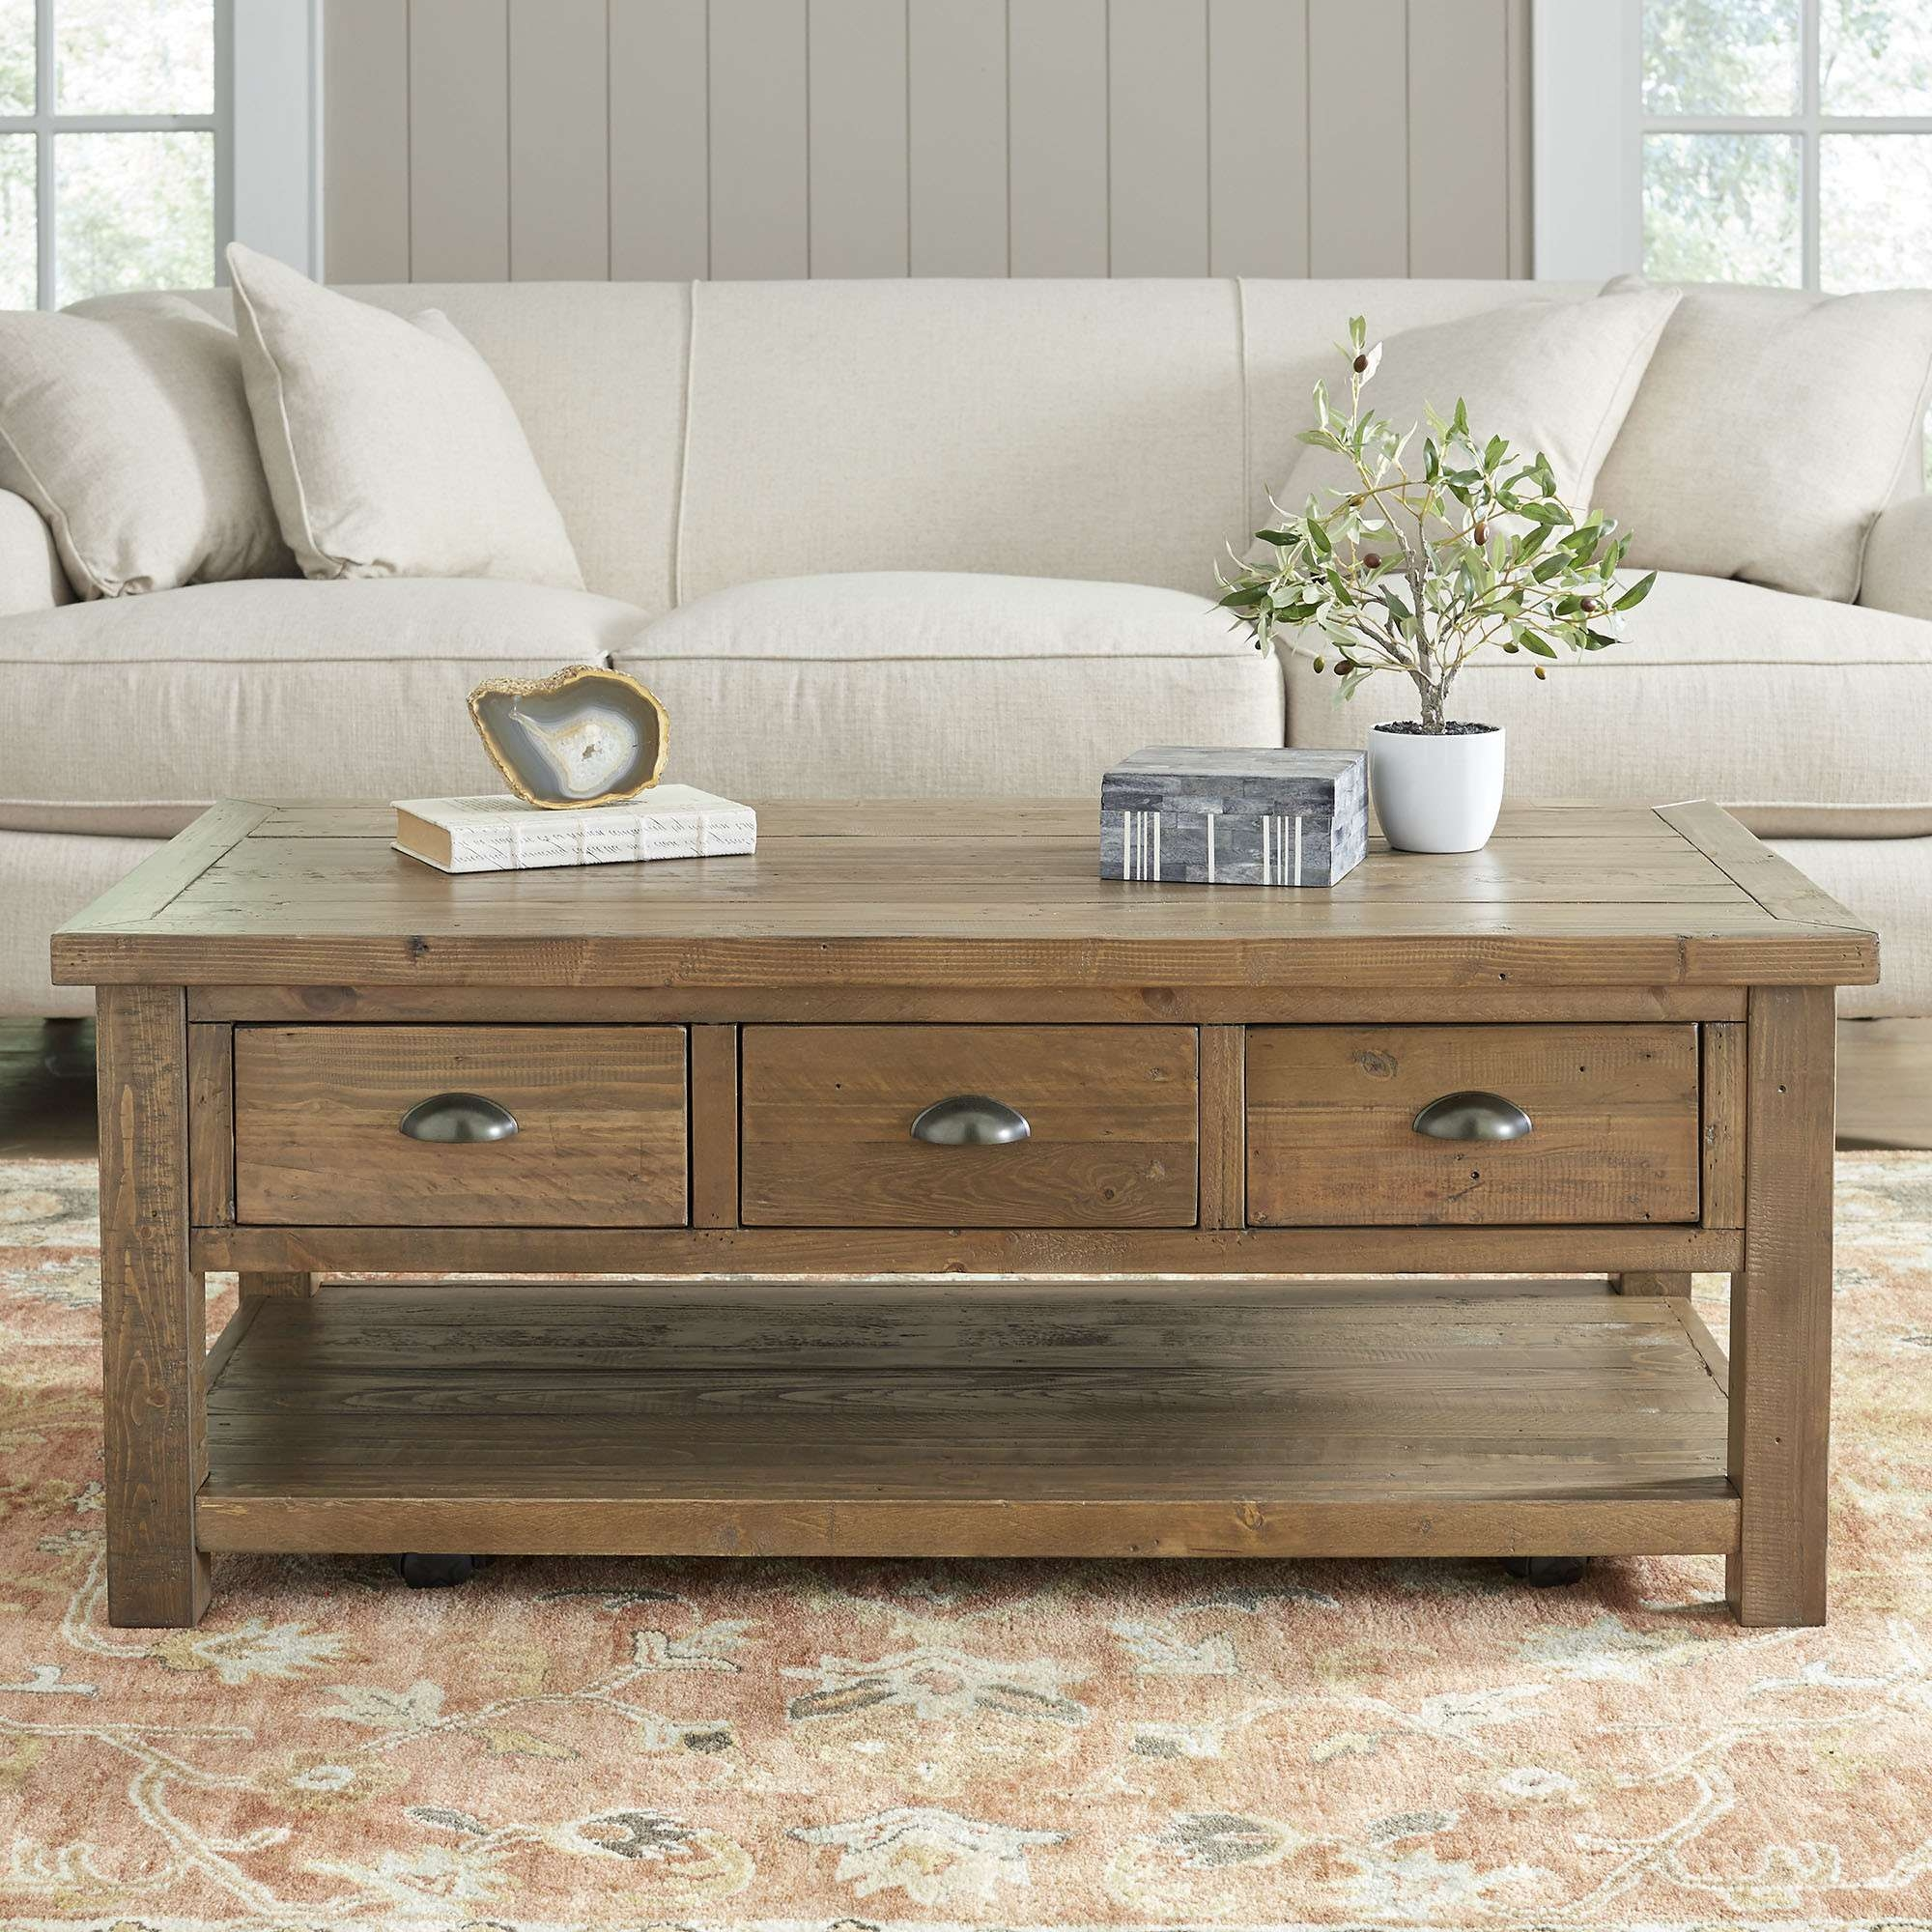 Stylish Coffee Table With Drawers (View 18 of 20)